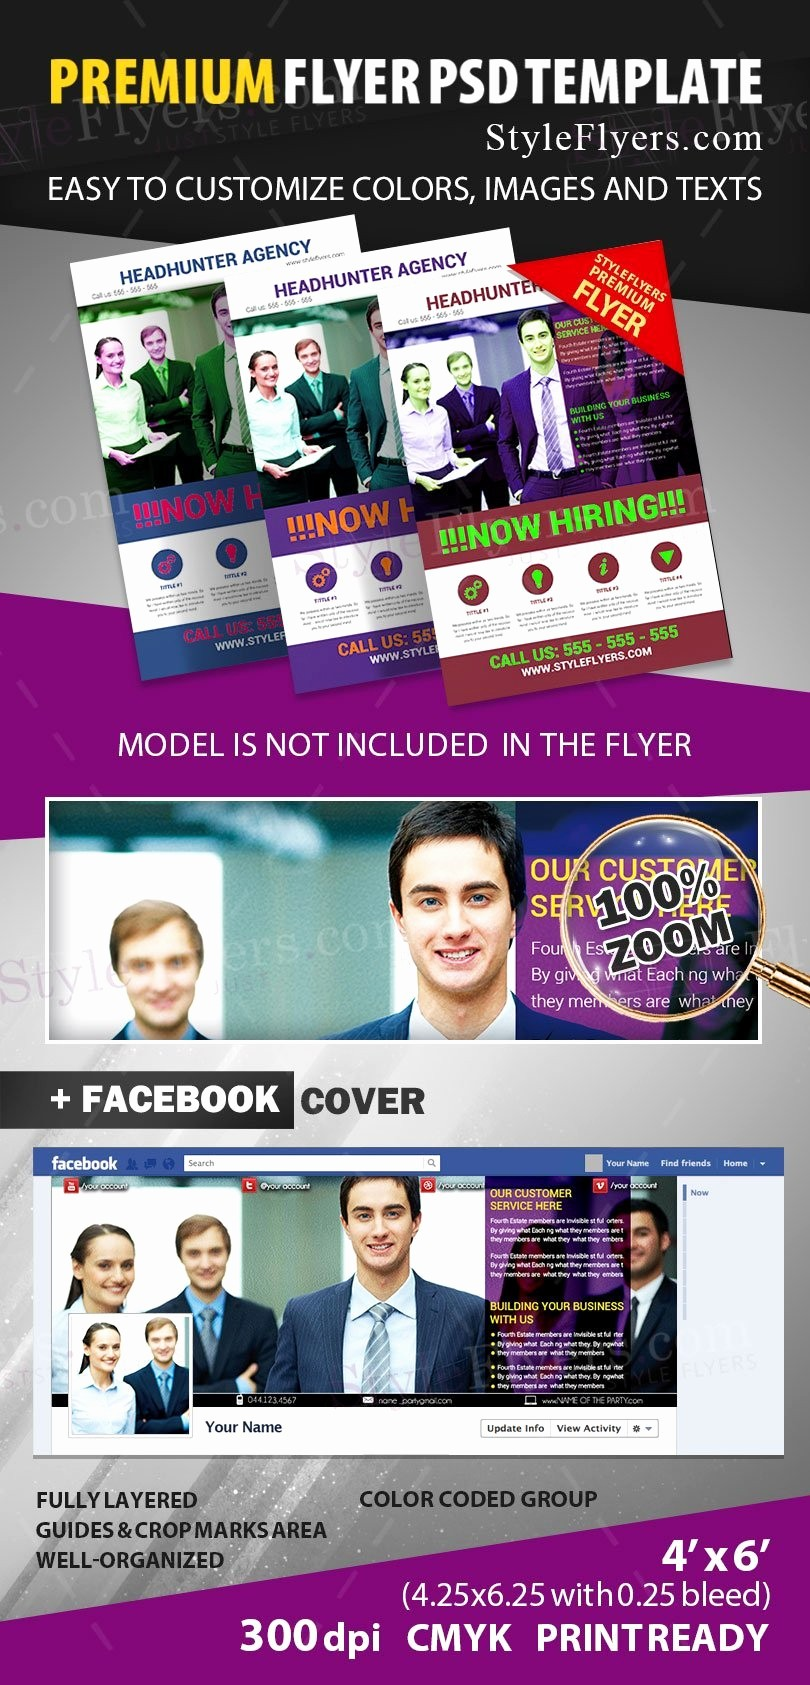 Now Hiring Flyer Template Free New now Hiring Psd Flyer Template Styleflyers